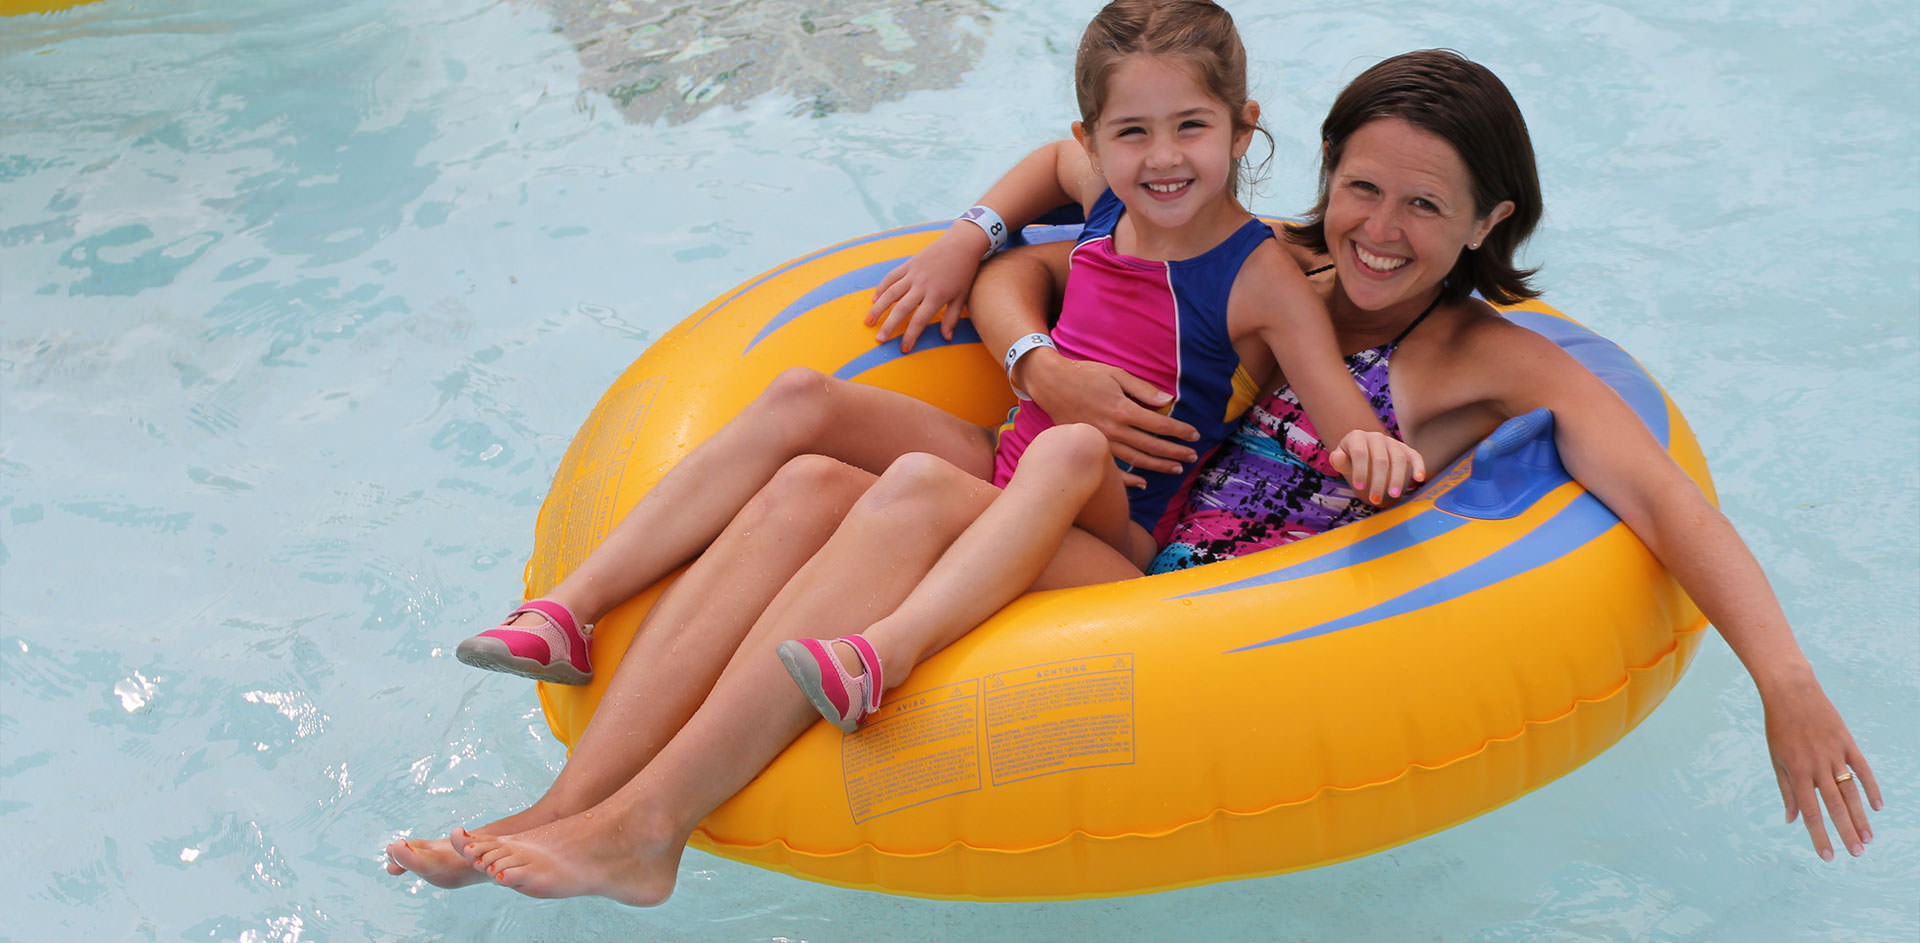 Mom and daughter floating in inner tube.